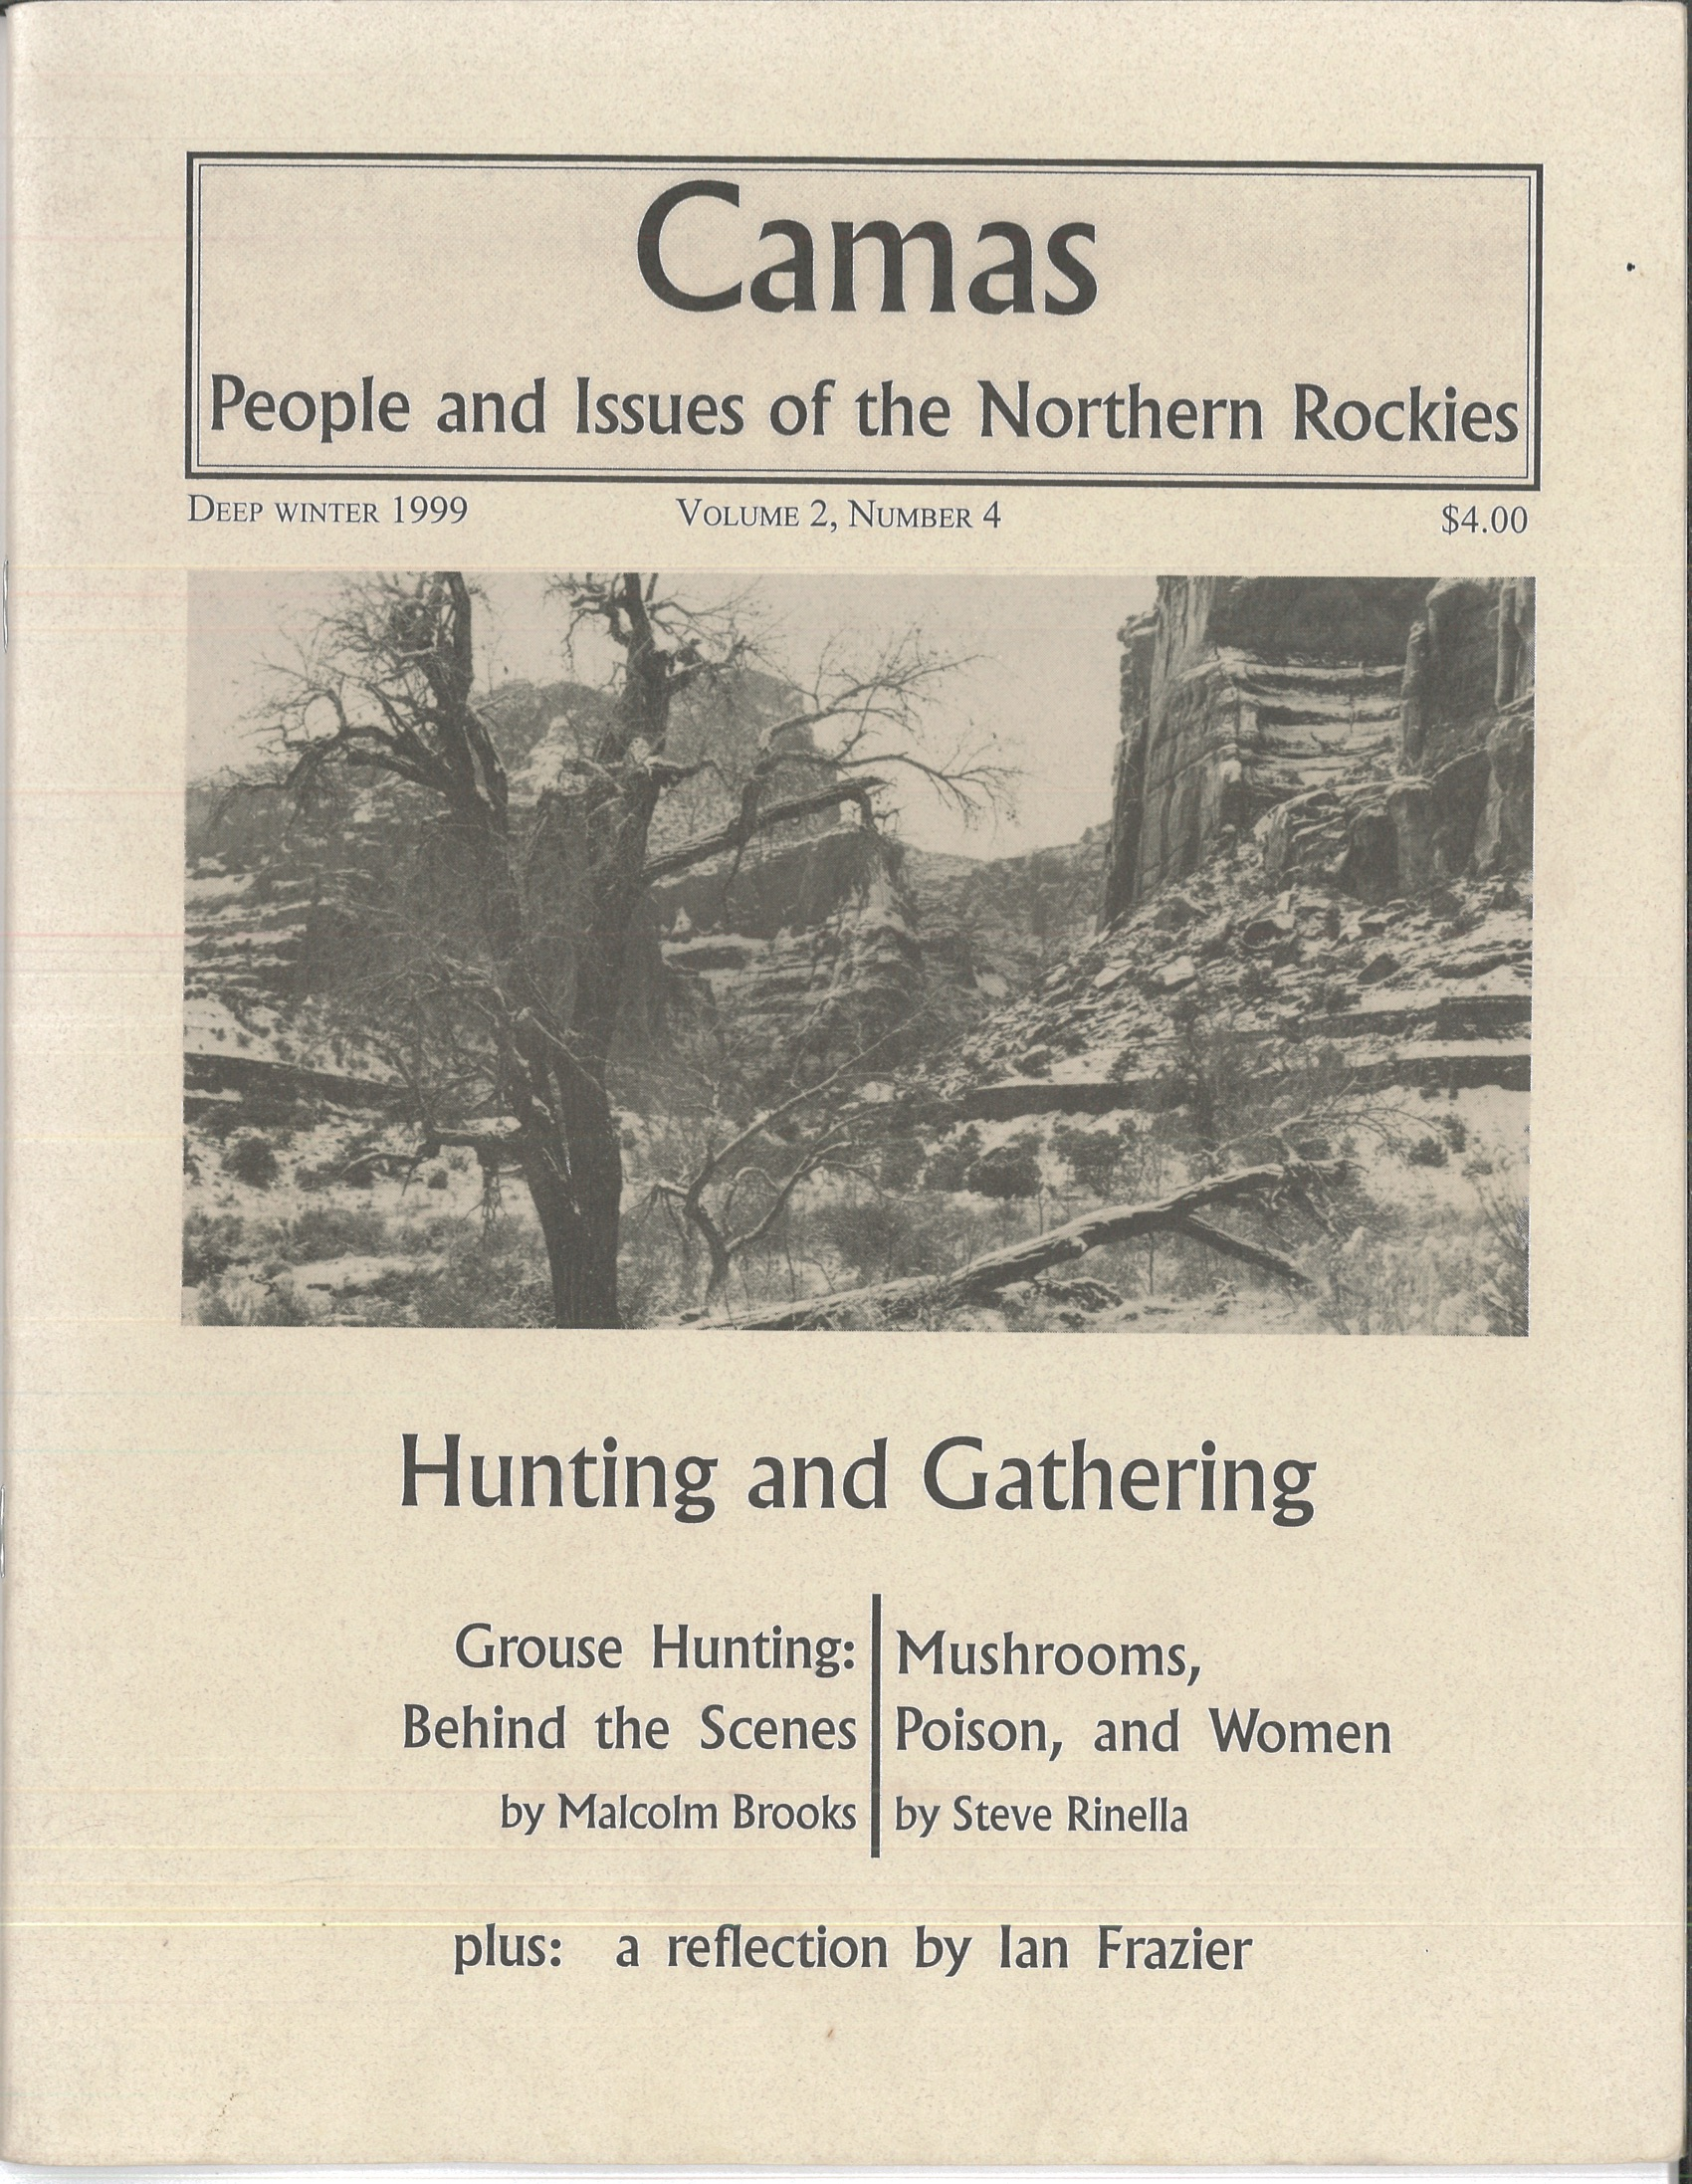 Deep Winter 1999: Hunting and Gathering - Featuring